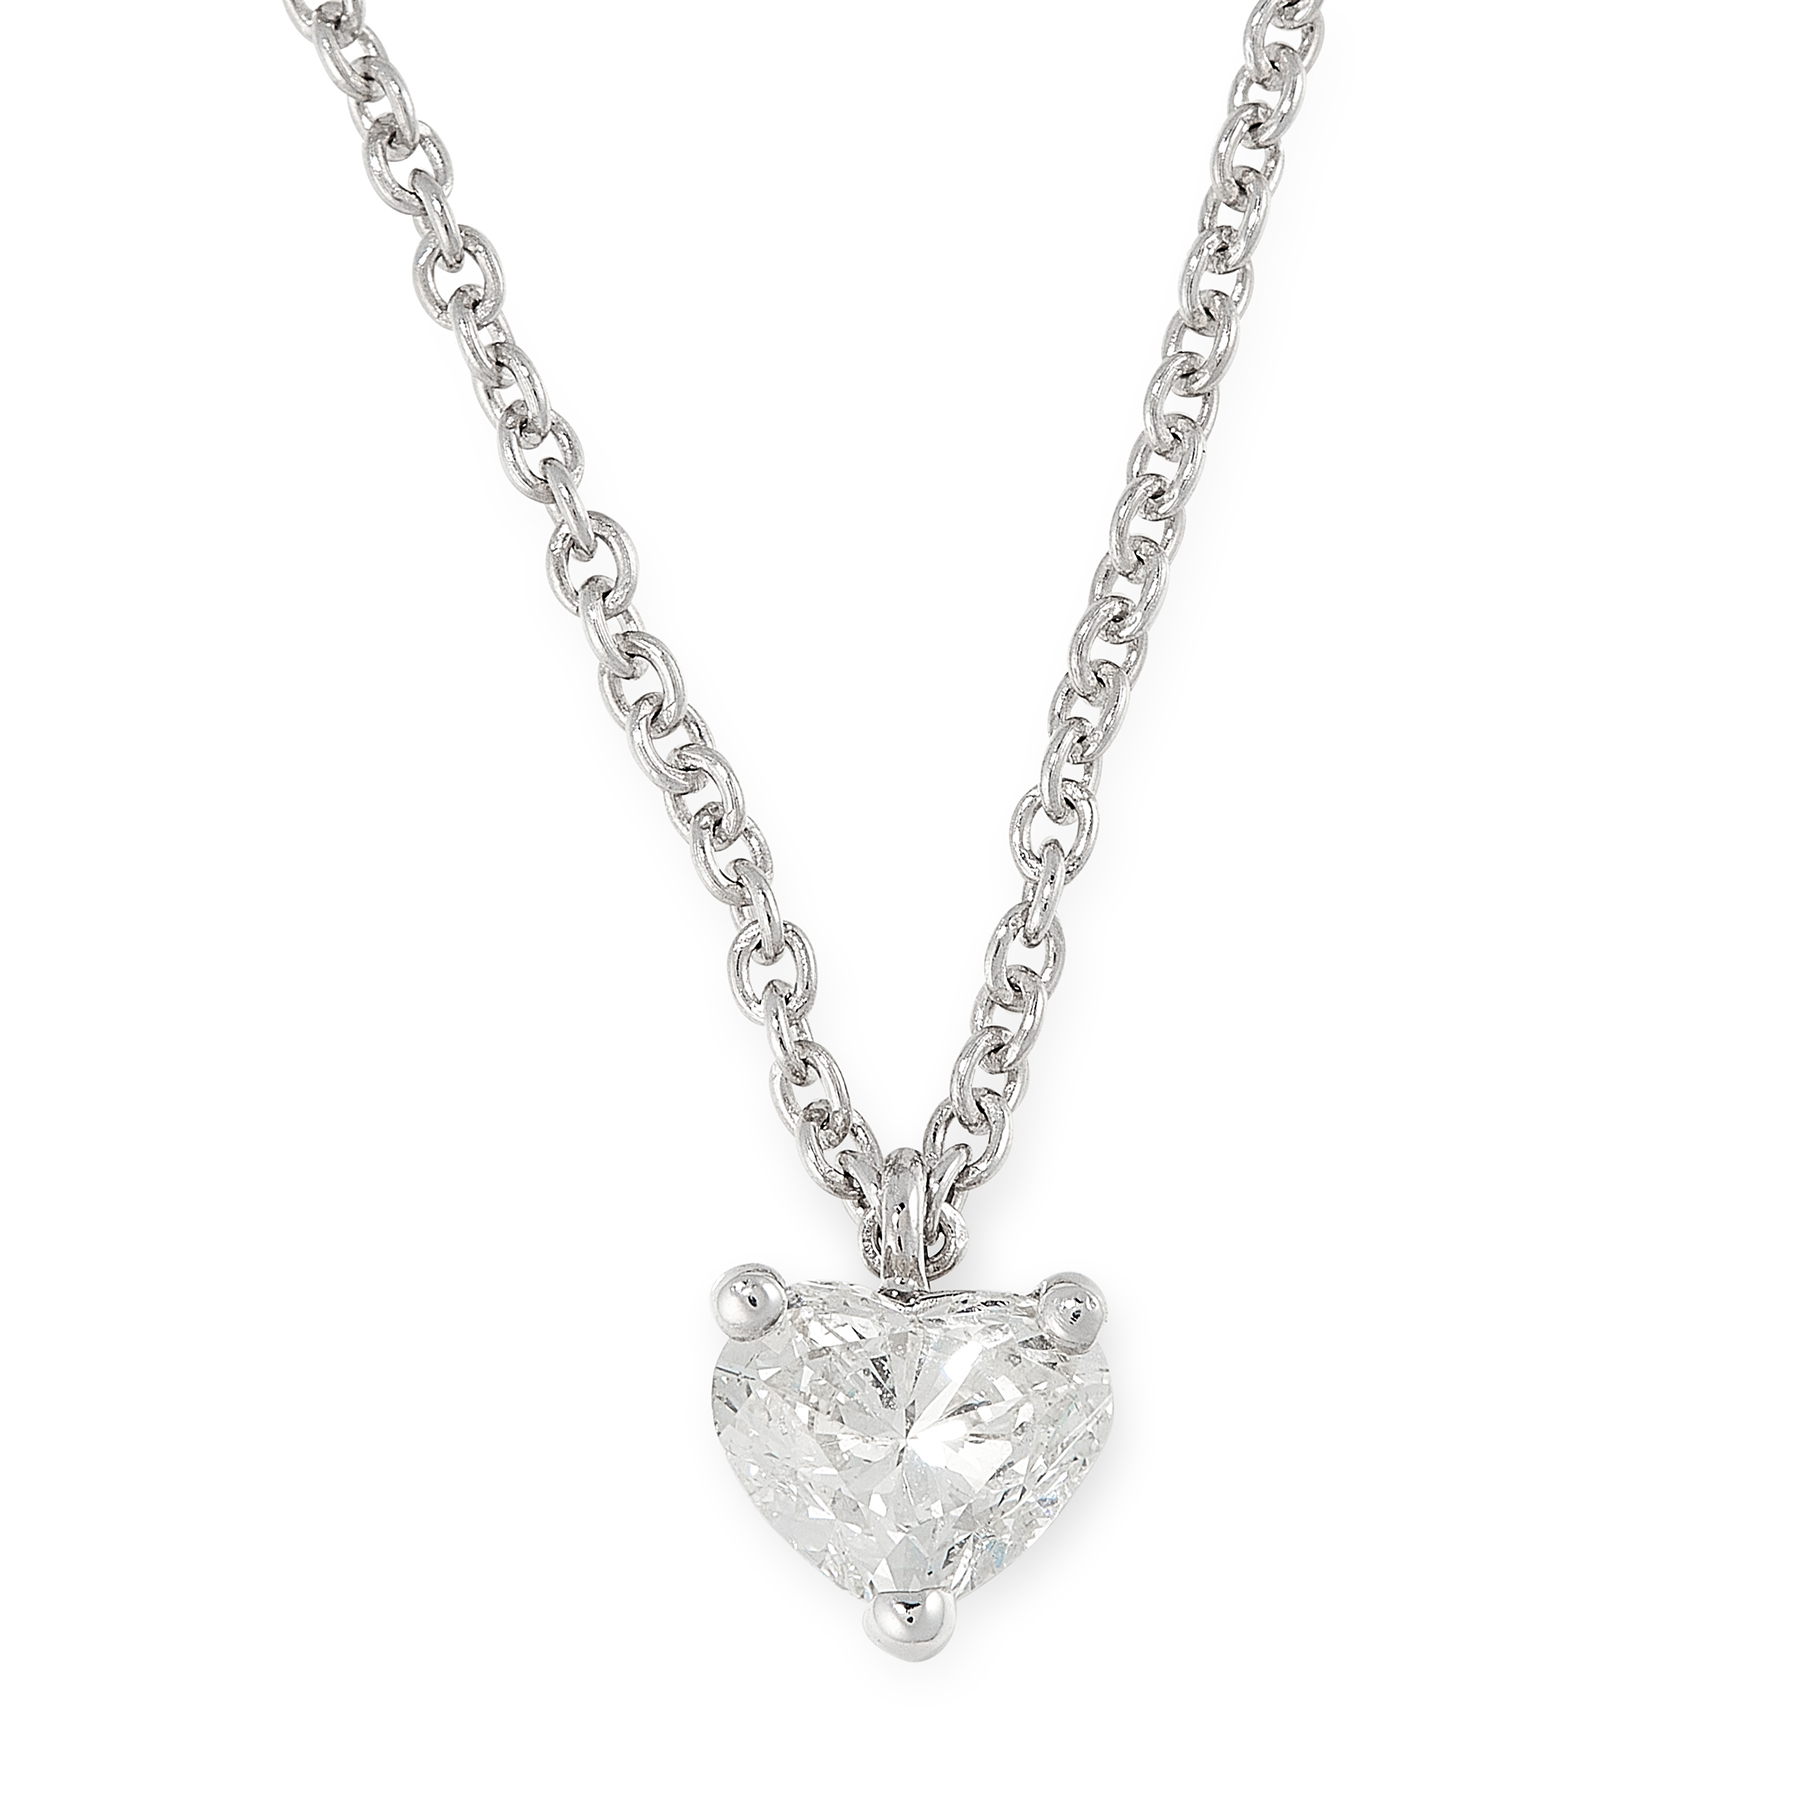 A DIAMOND PENDANT AND CHAIN in 18ct white gold, set with a heart cut diamond of 0.94 carats on a